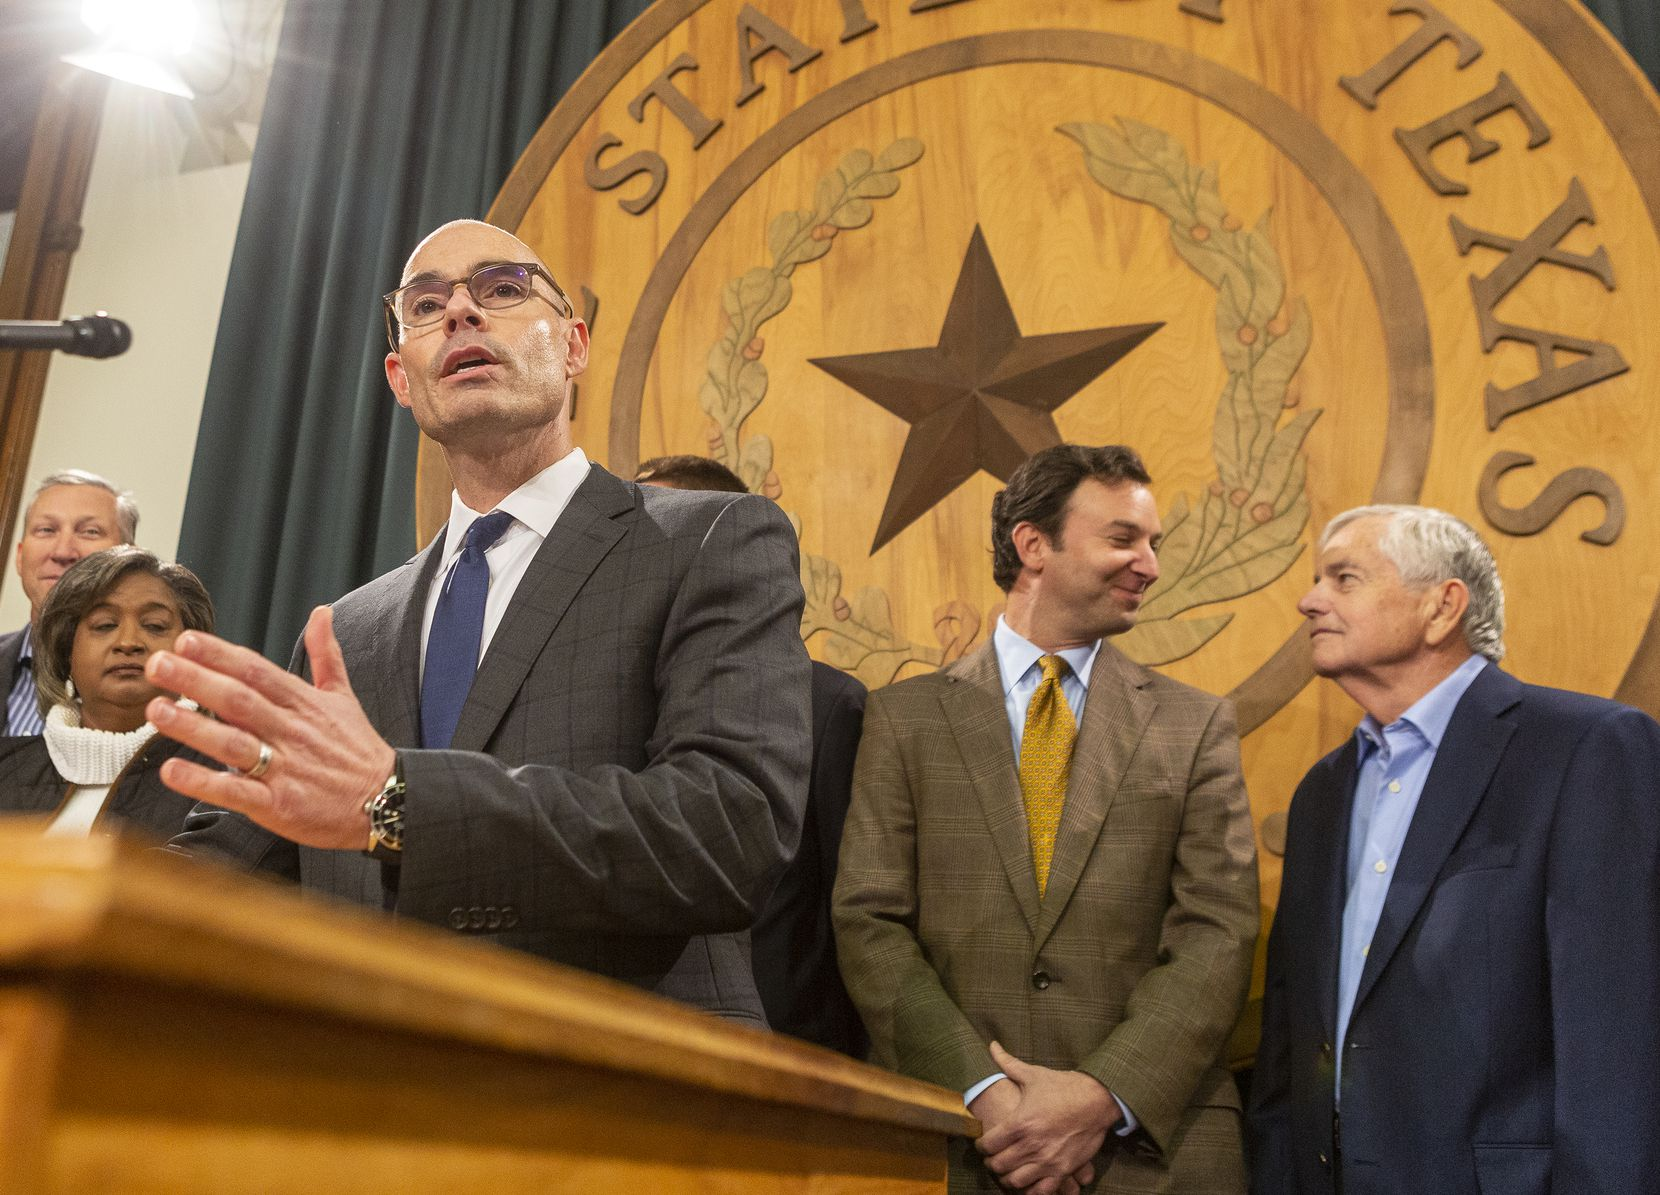 At Bonnen's announcement Monday that he has the votes to become speaker, standing behind him were two GOP state representatives who were said to have been helpful in rallying GOP members behind his candidacy -- Fort Worth's Craig Goldman, right of Bonnen and wearing a gold tie, and Muenster's Drew Springer, far left.